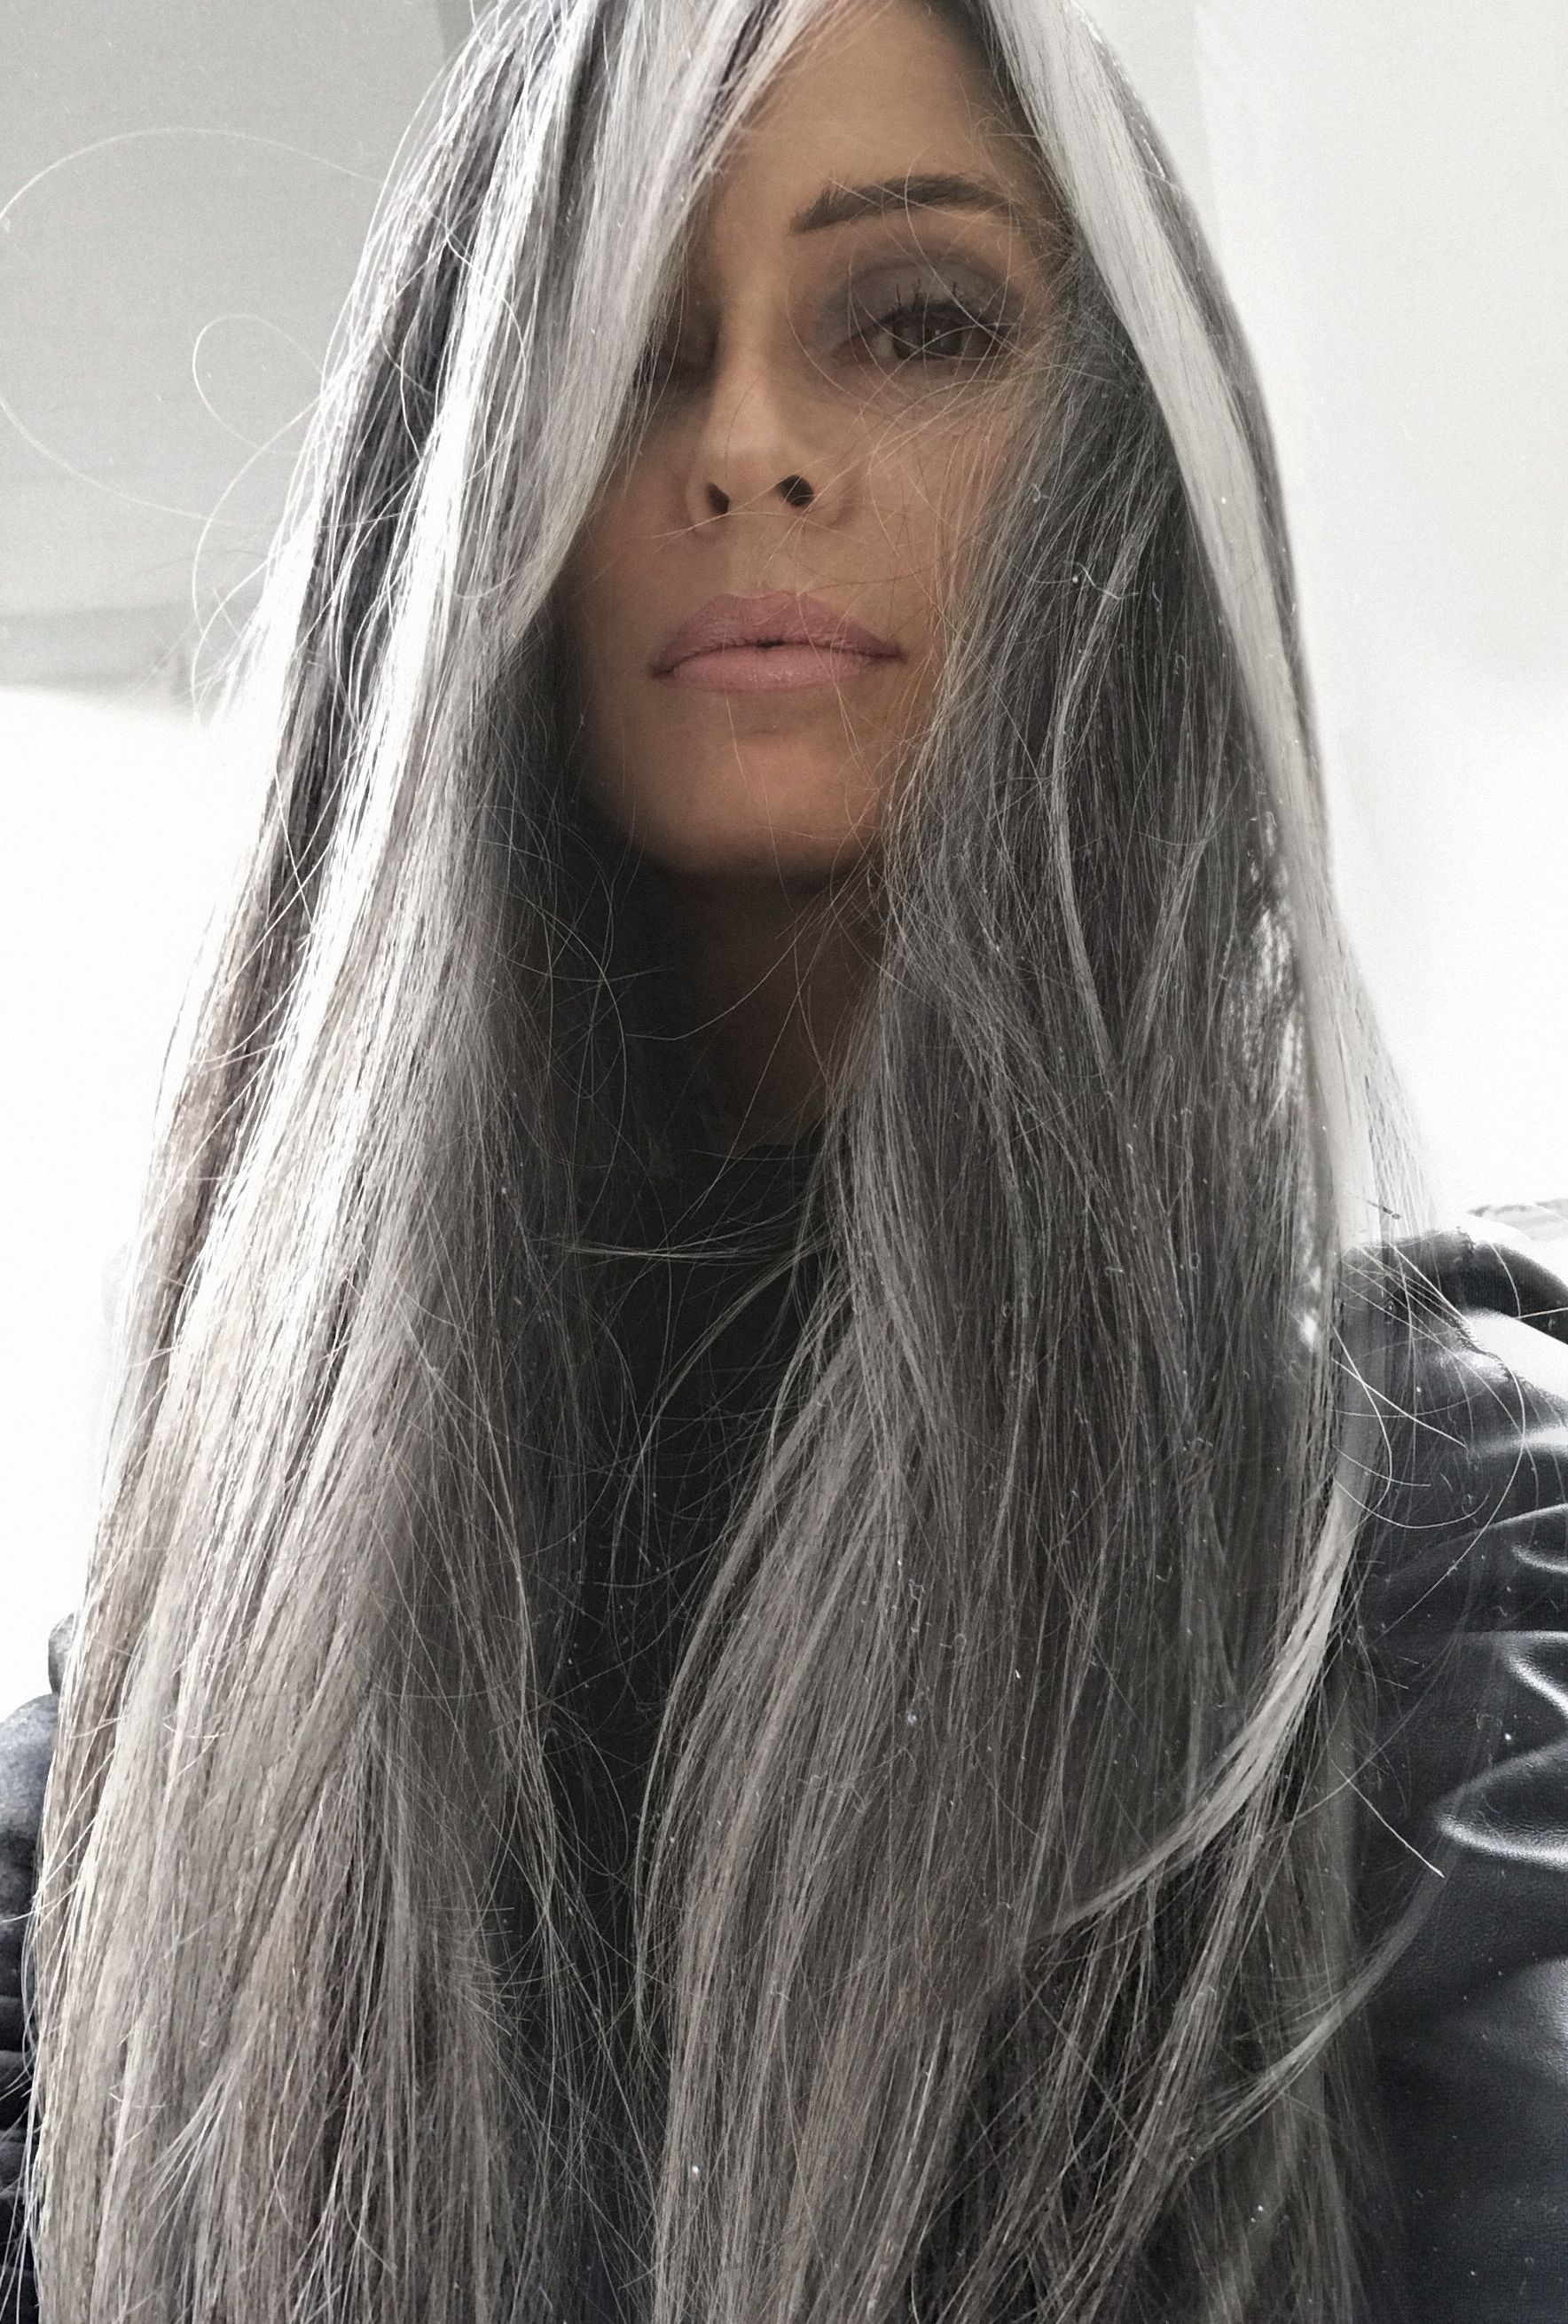 2020 New Gray Hair Wigs For African American Women Growing Out Gray Hair Smokey Grey Hair Colour Best Semi Permanent Hair Color To Cover Gray For African American Hair Cheap Curly Wigs Wigs That Look Real